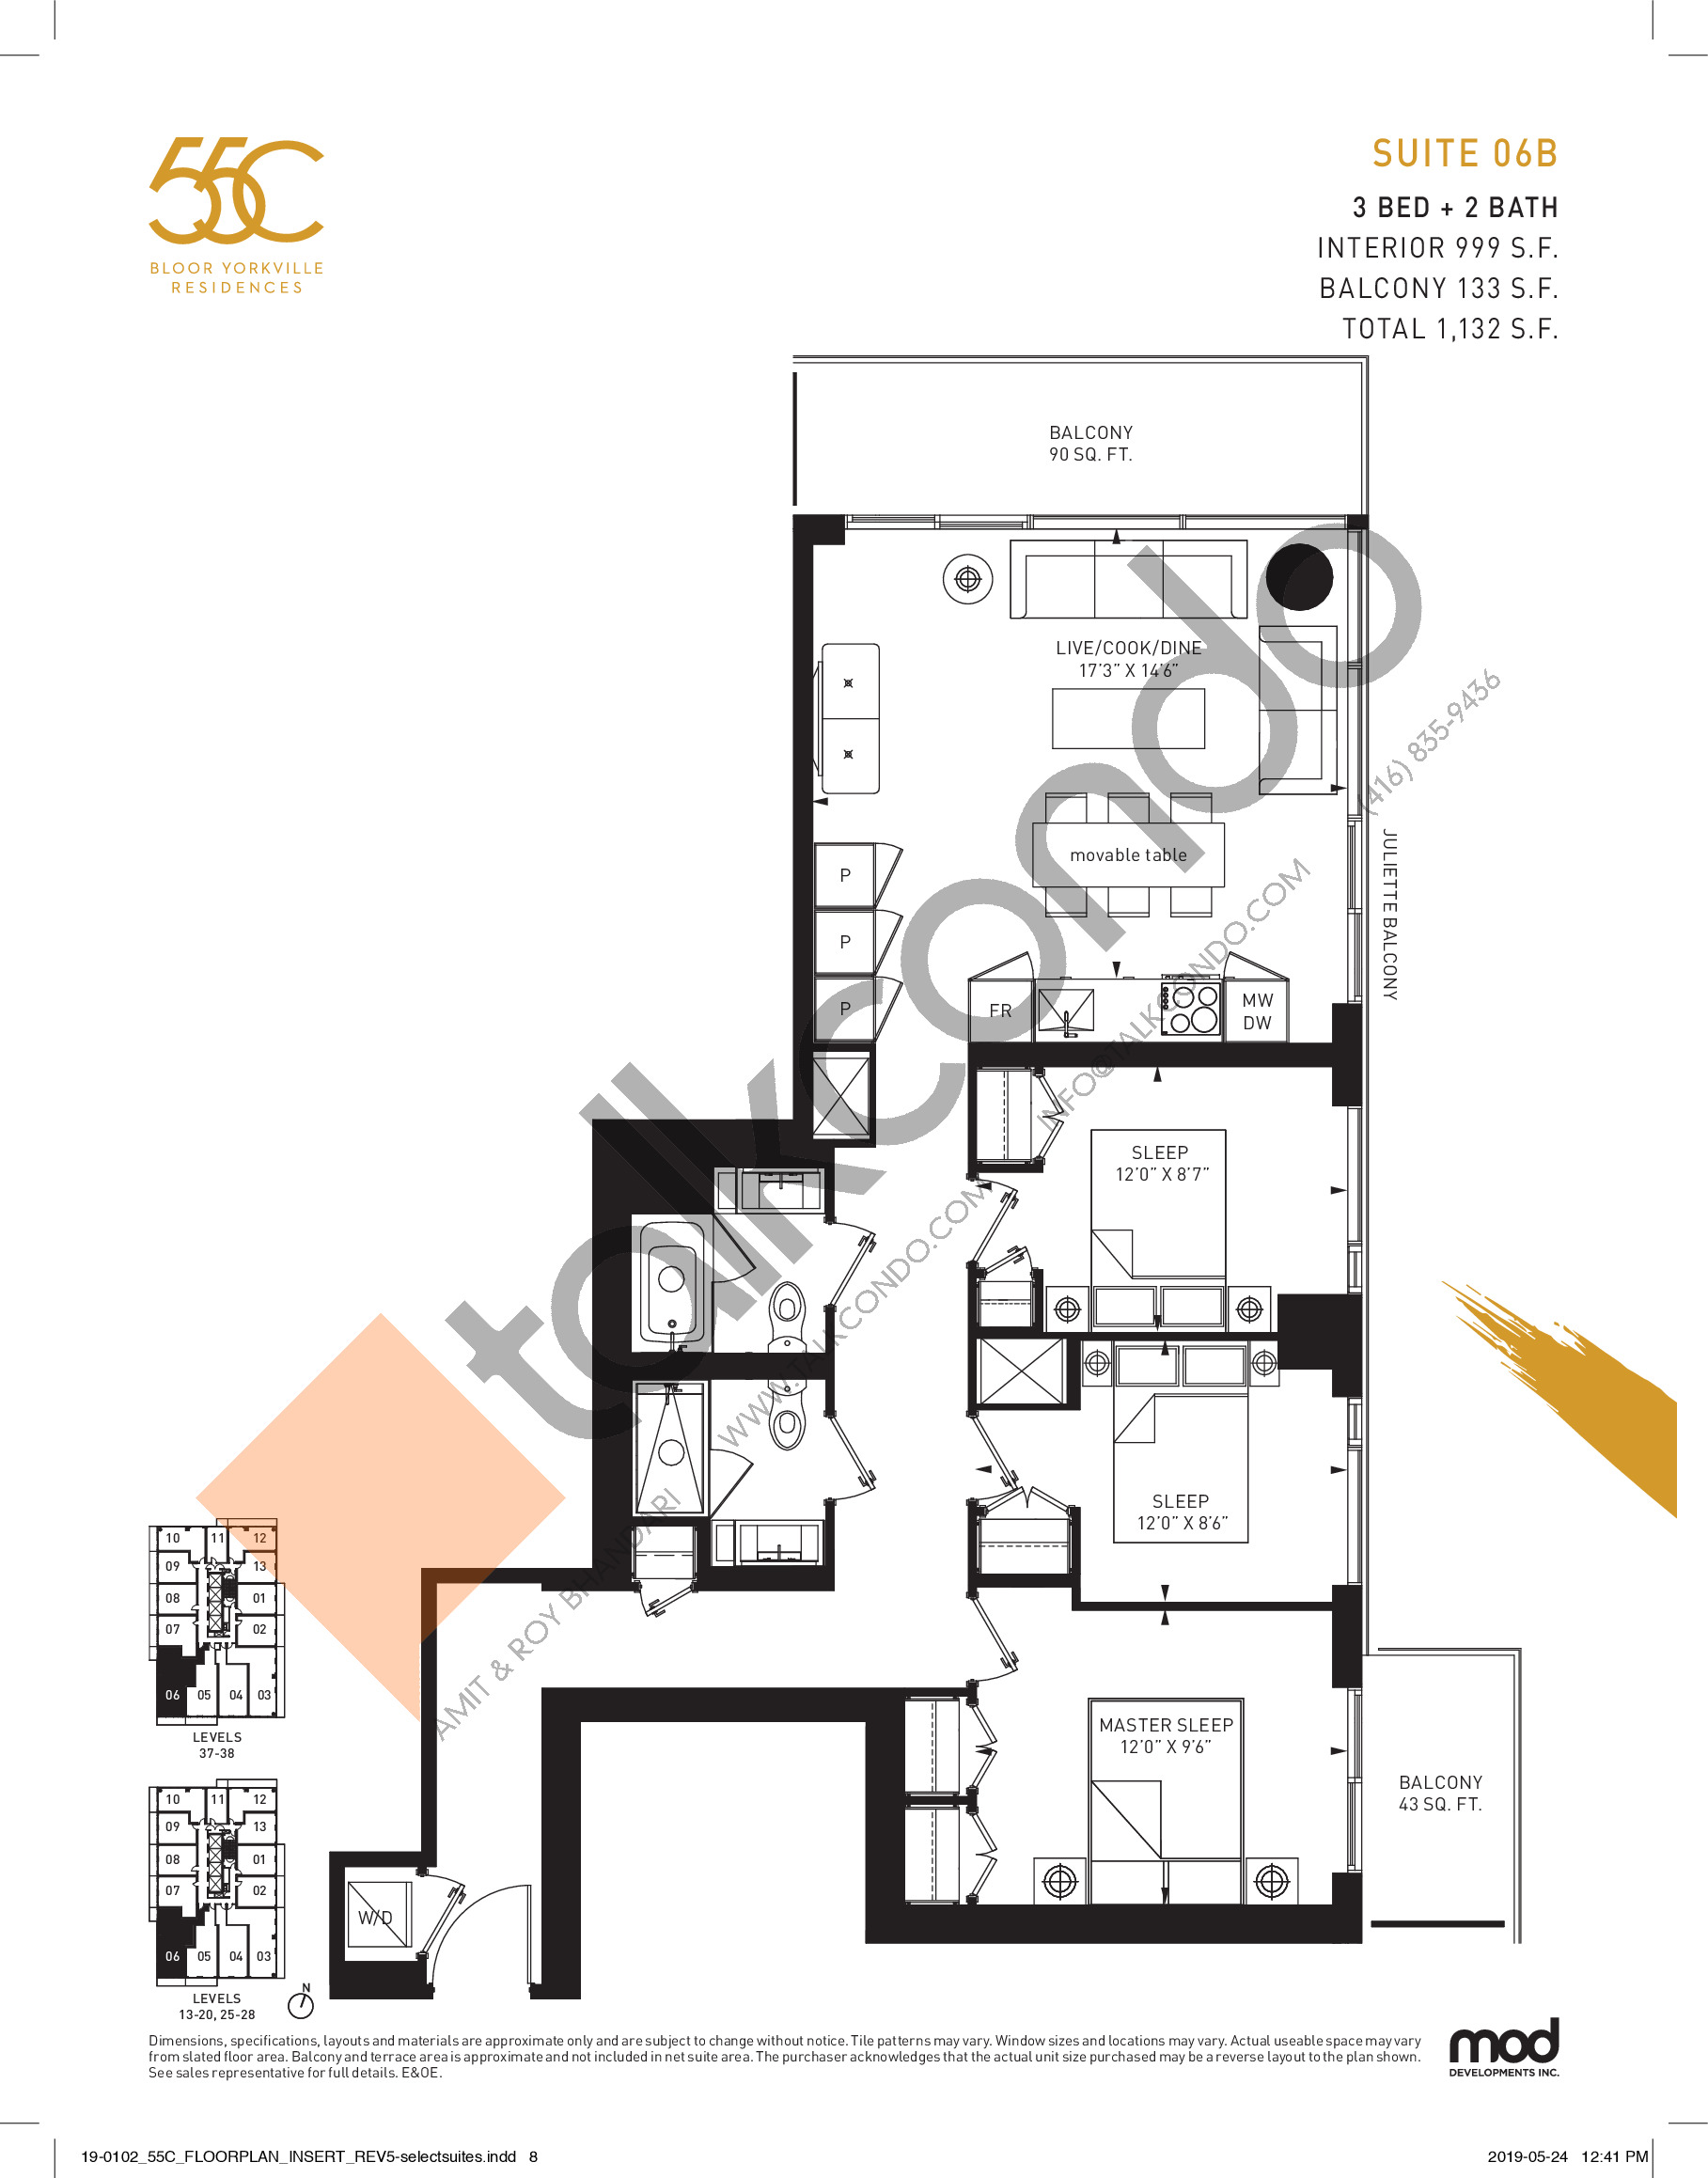 Suite 06B Floor Plan at 55C Condos - 999 sq.ft